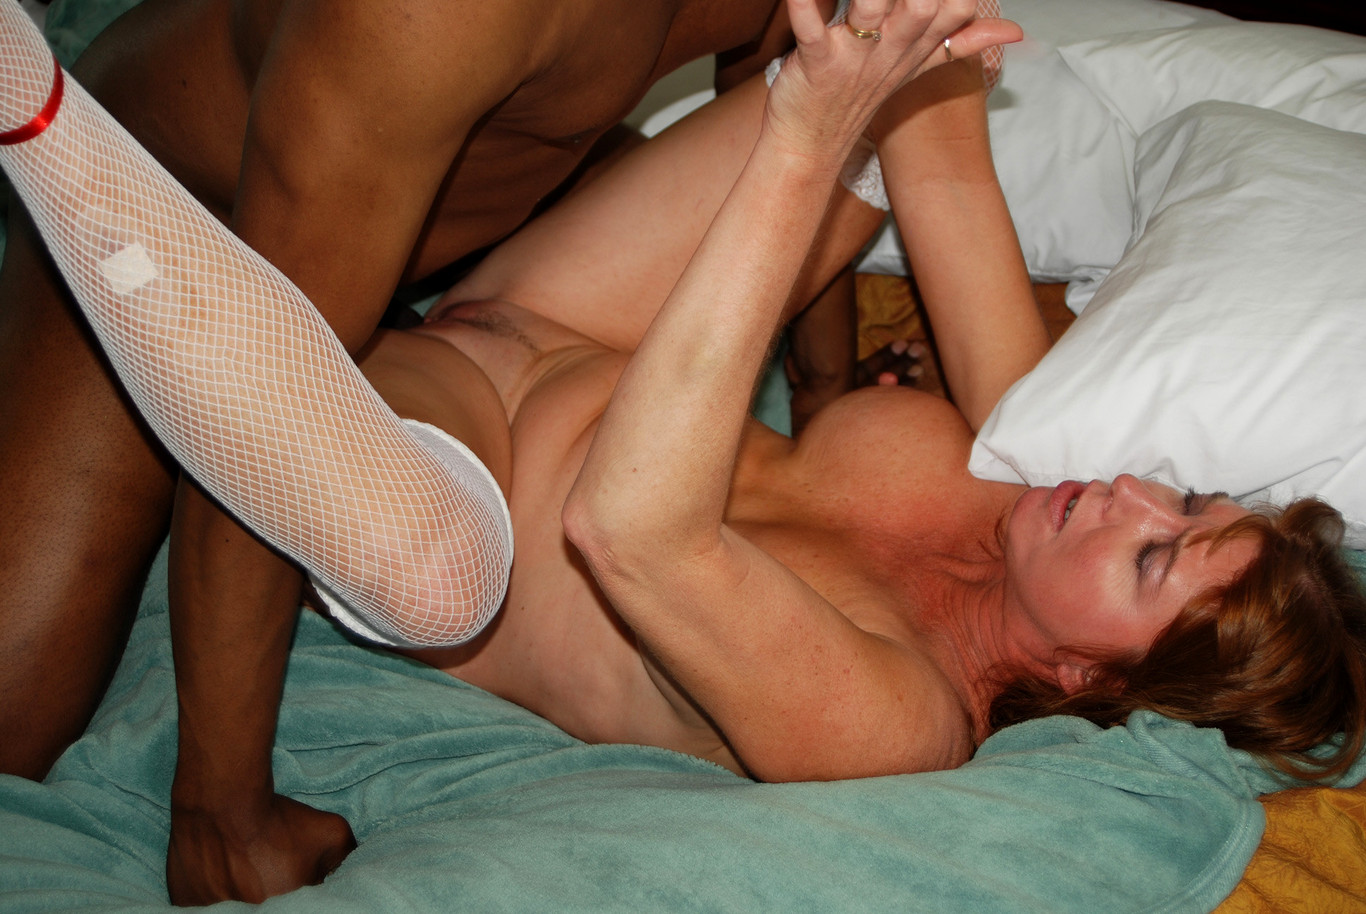 free-real-tampa-swingers-videos-loving-wife-fuck-video